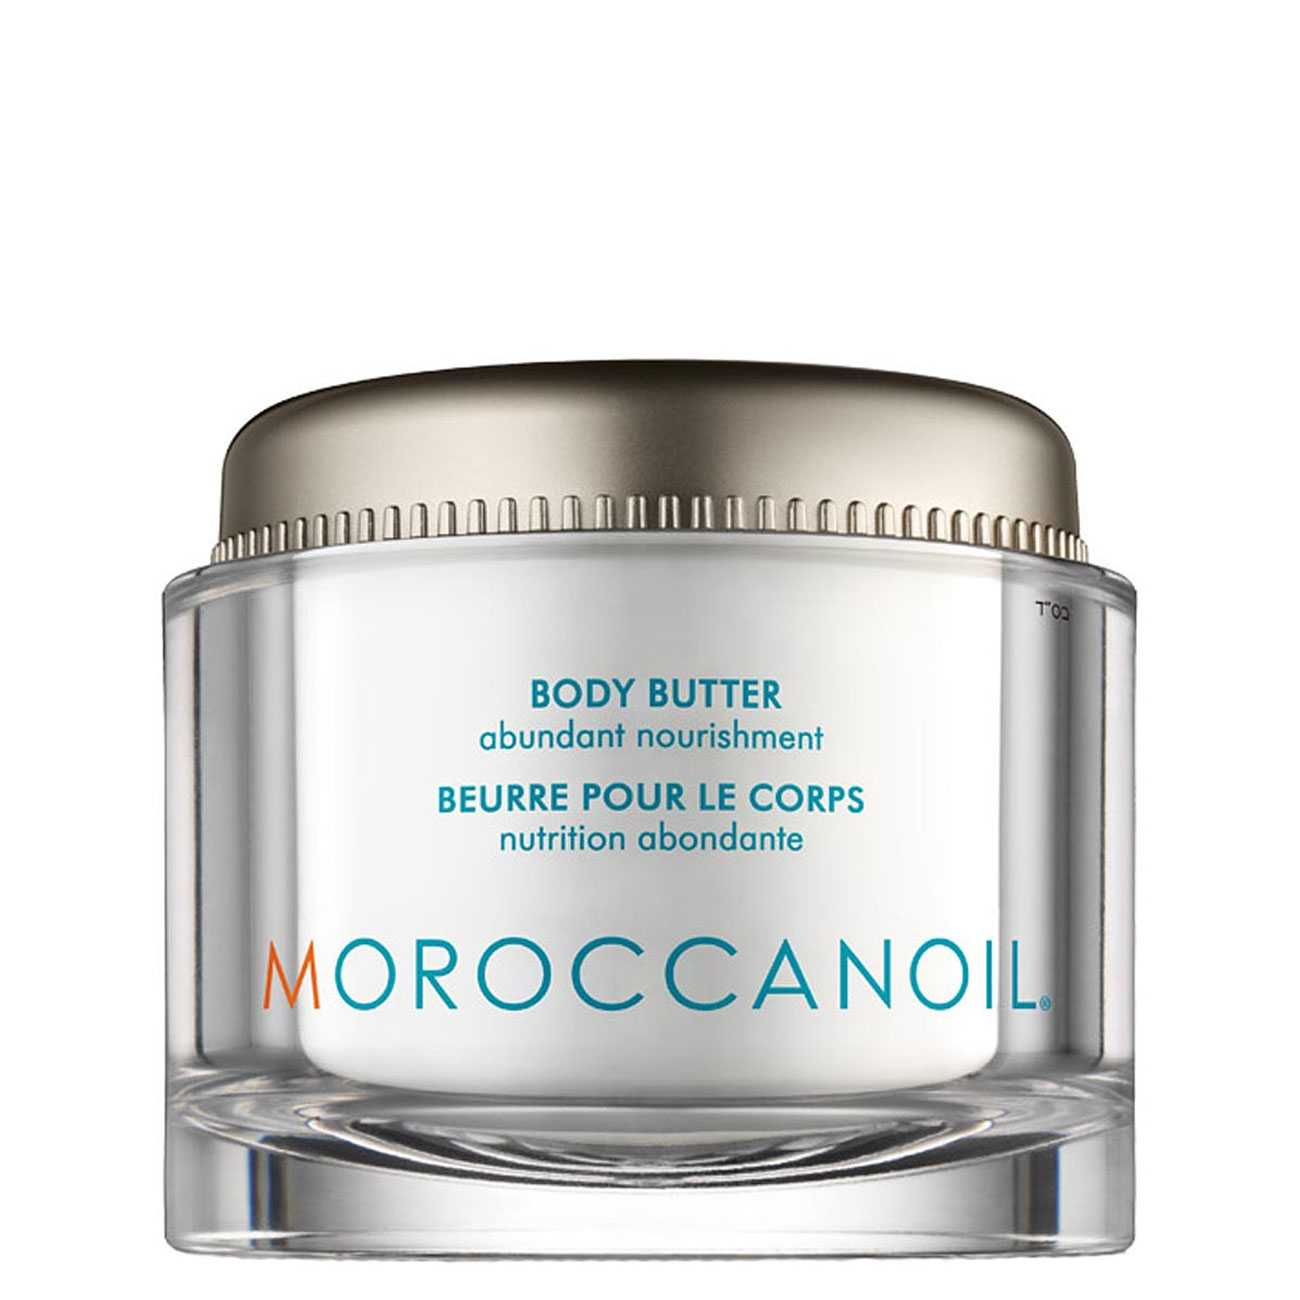 Body Butter 190 Ml Moroccanoil imagine 2021 bestvalue.eu